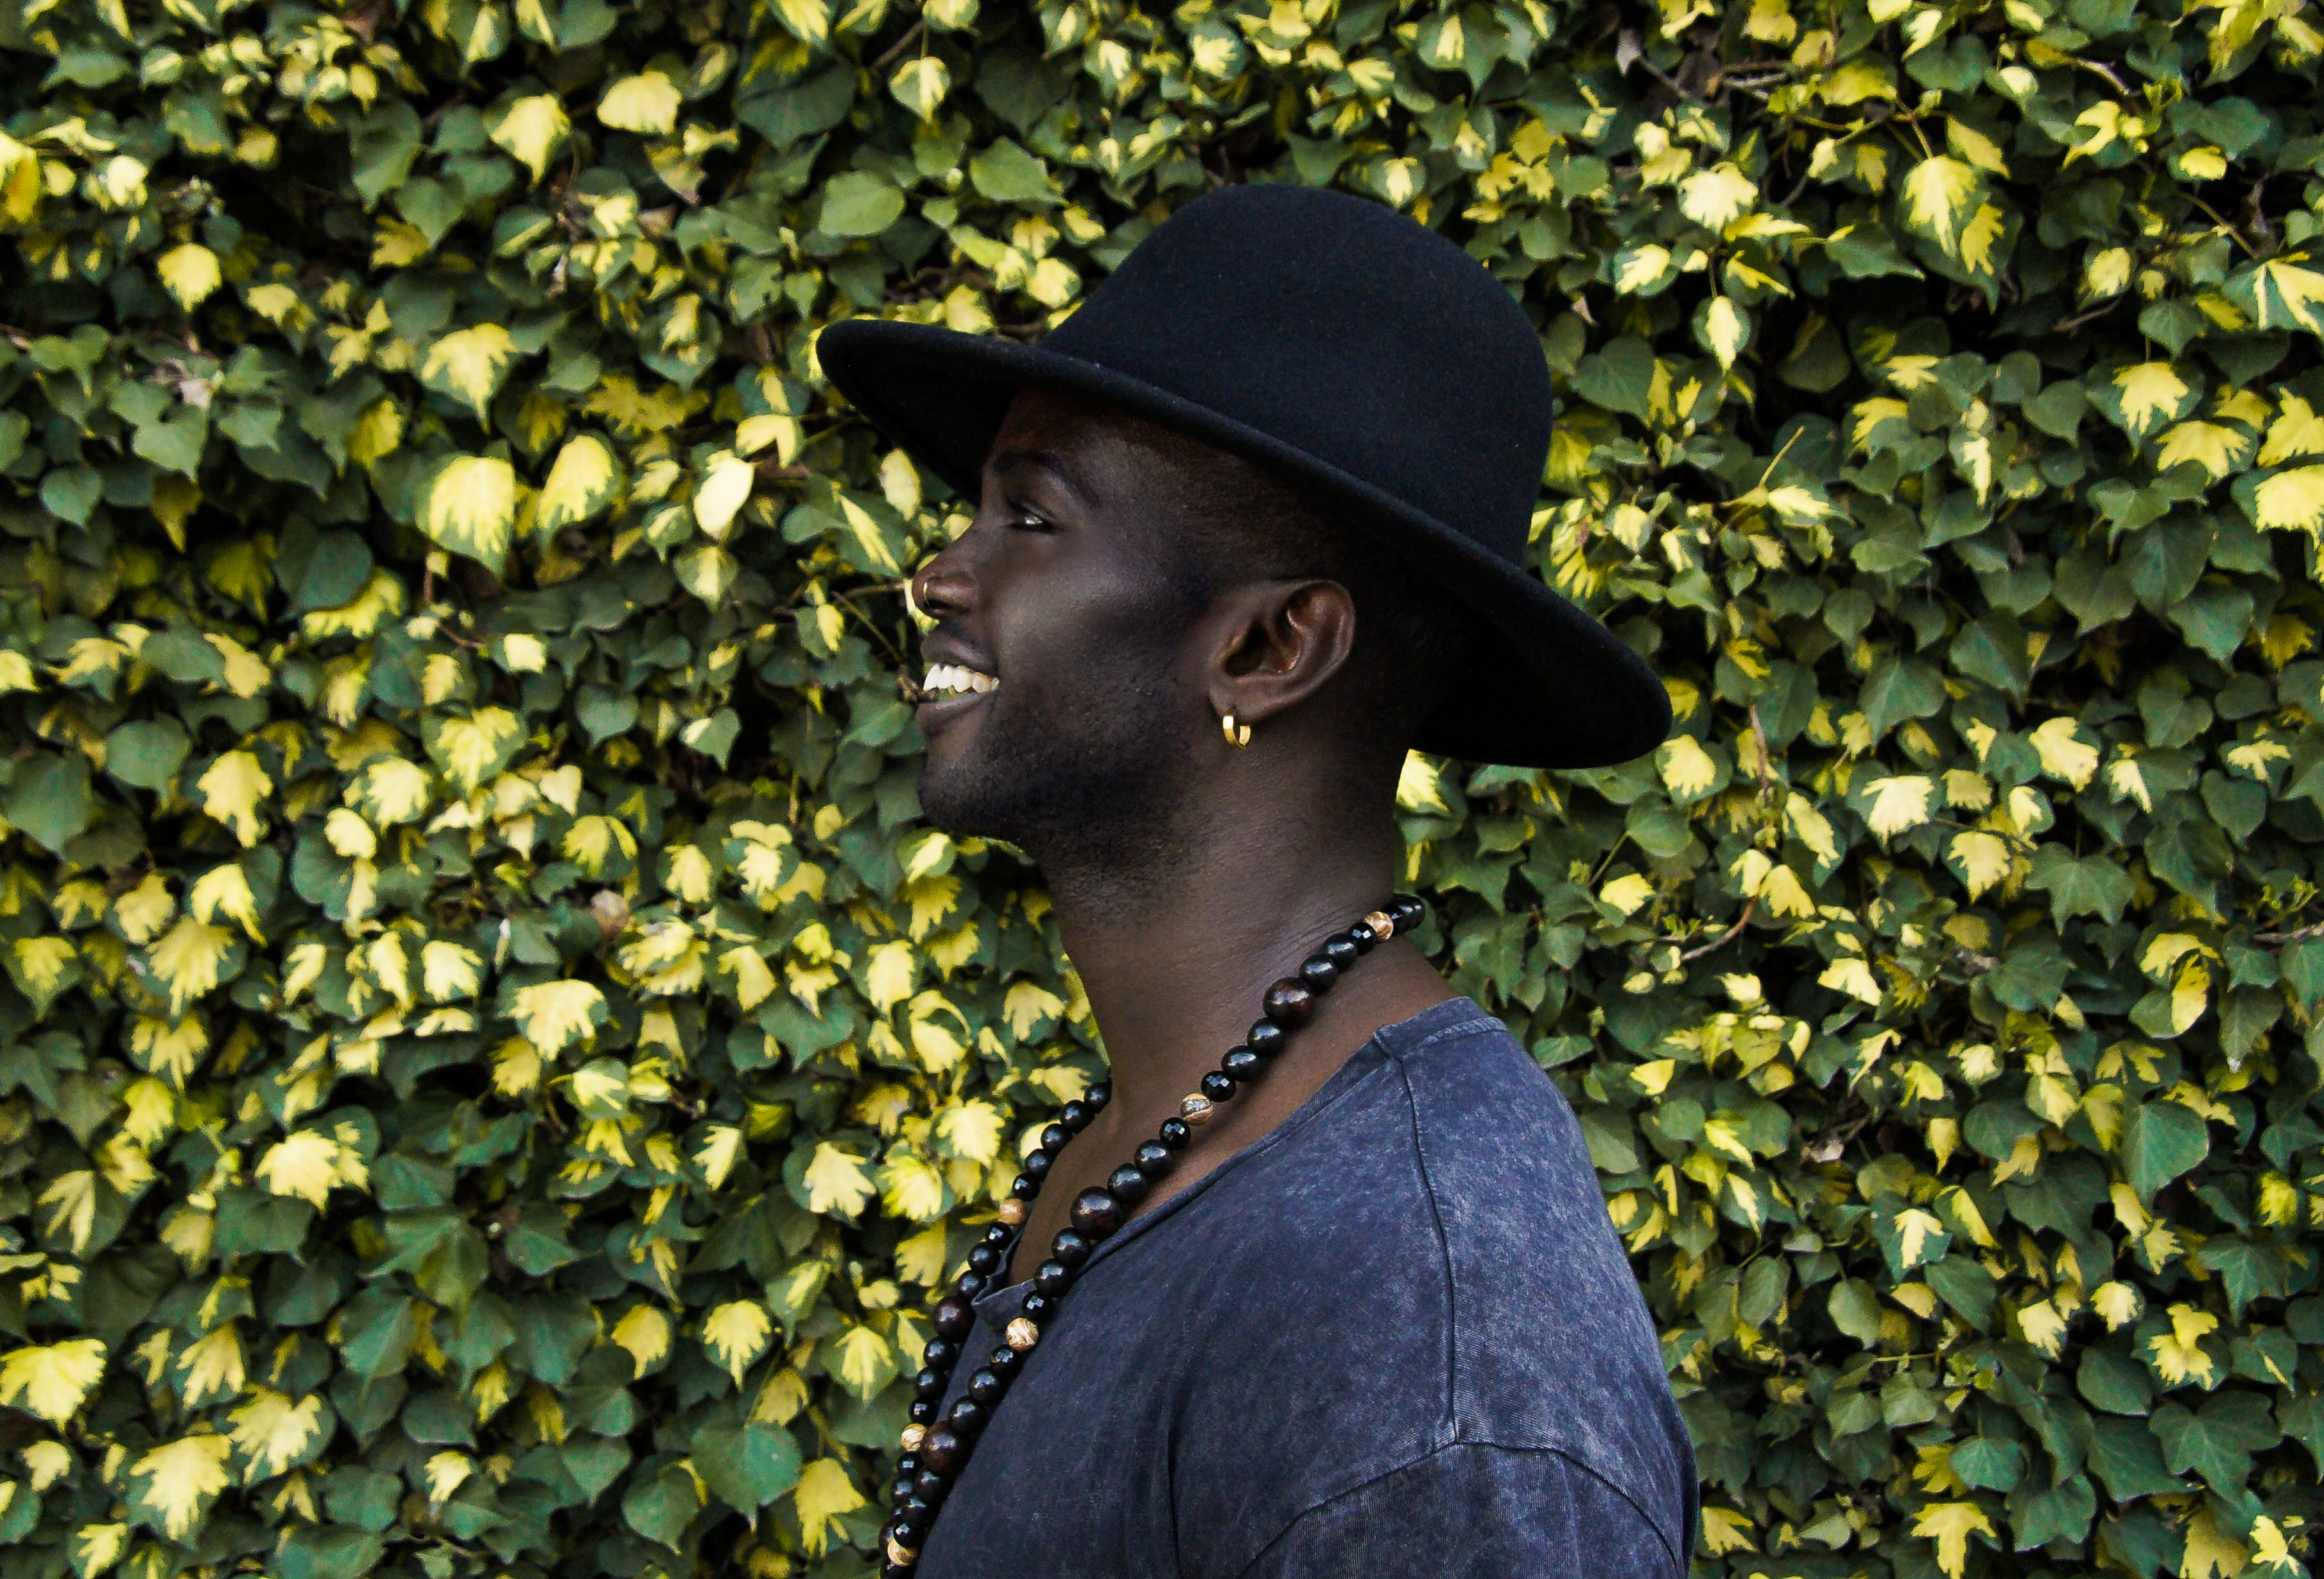 Man in a hat and necklace in front of a tall hedge, smiling to the side